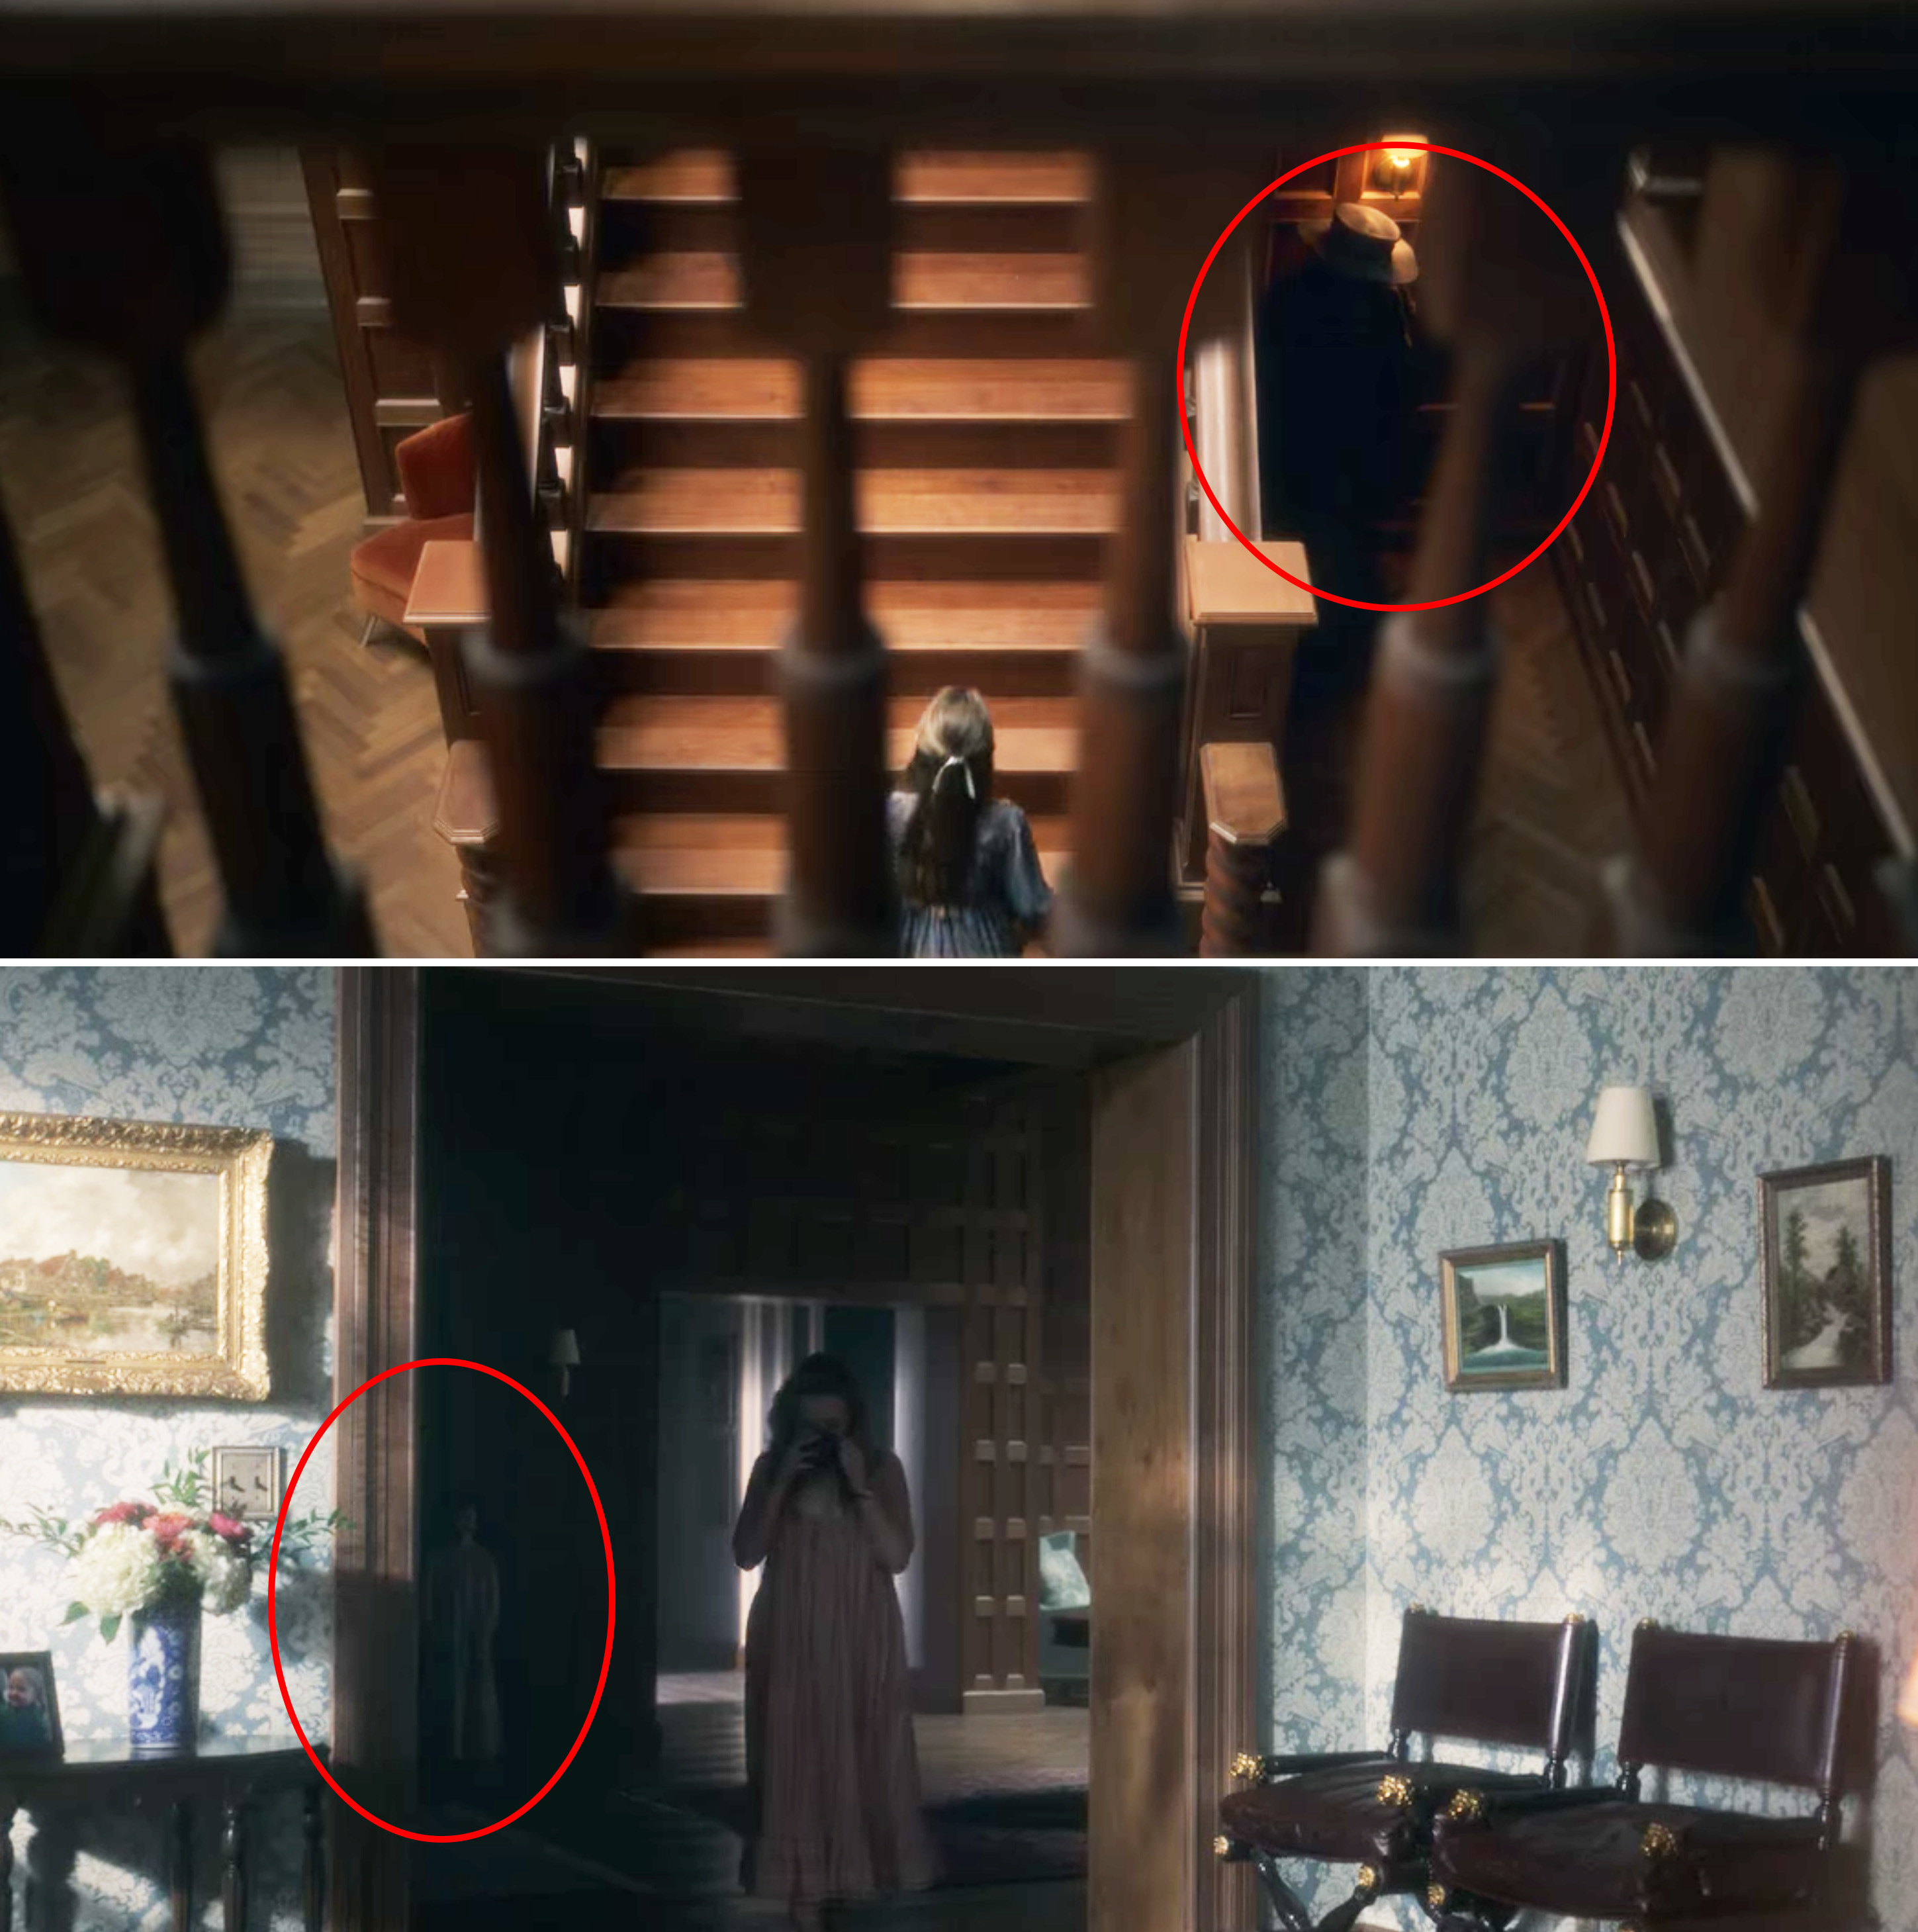 The plague doctor hiding near the stairs, and the small doll/child behind Dani in the foyer